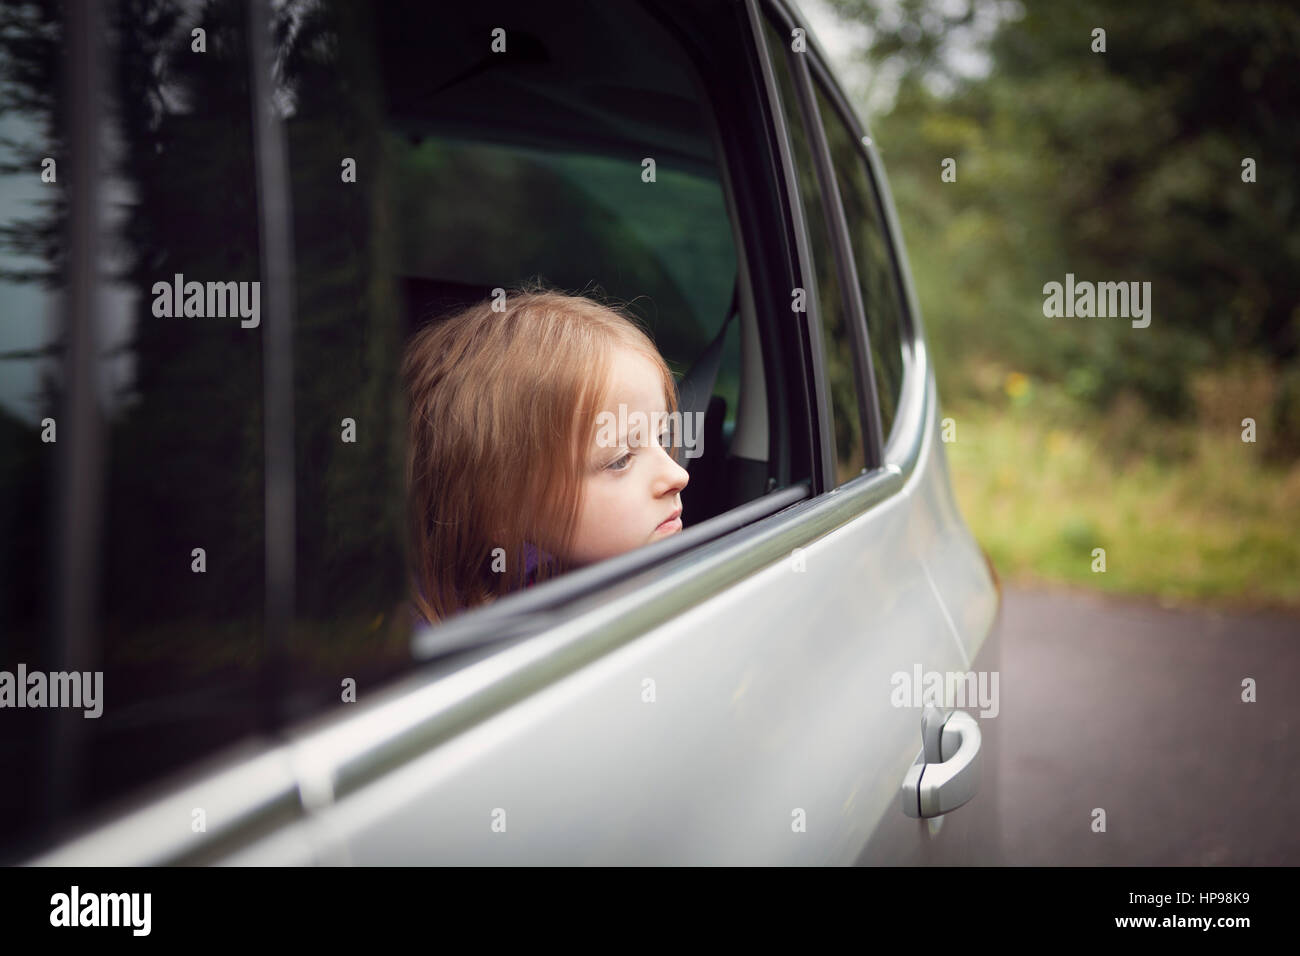 Girl looking out of open car window - Stock Image